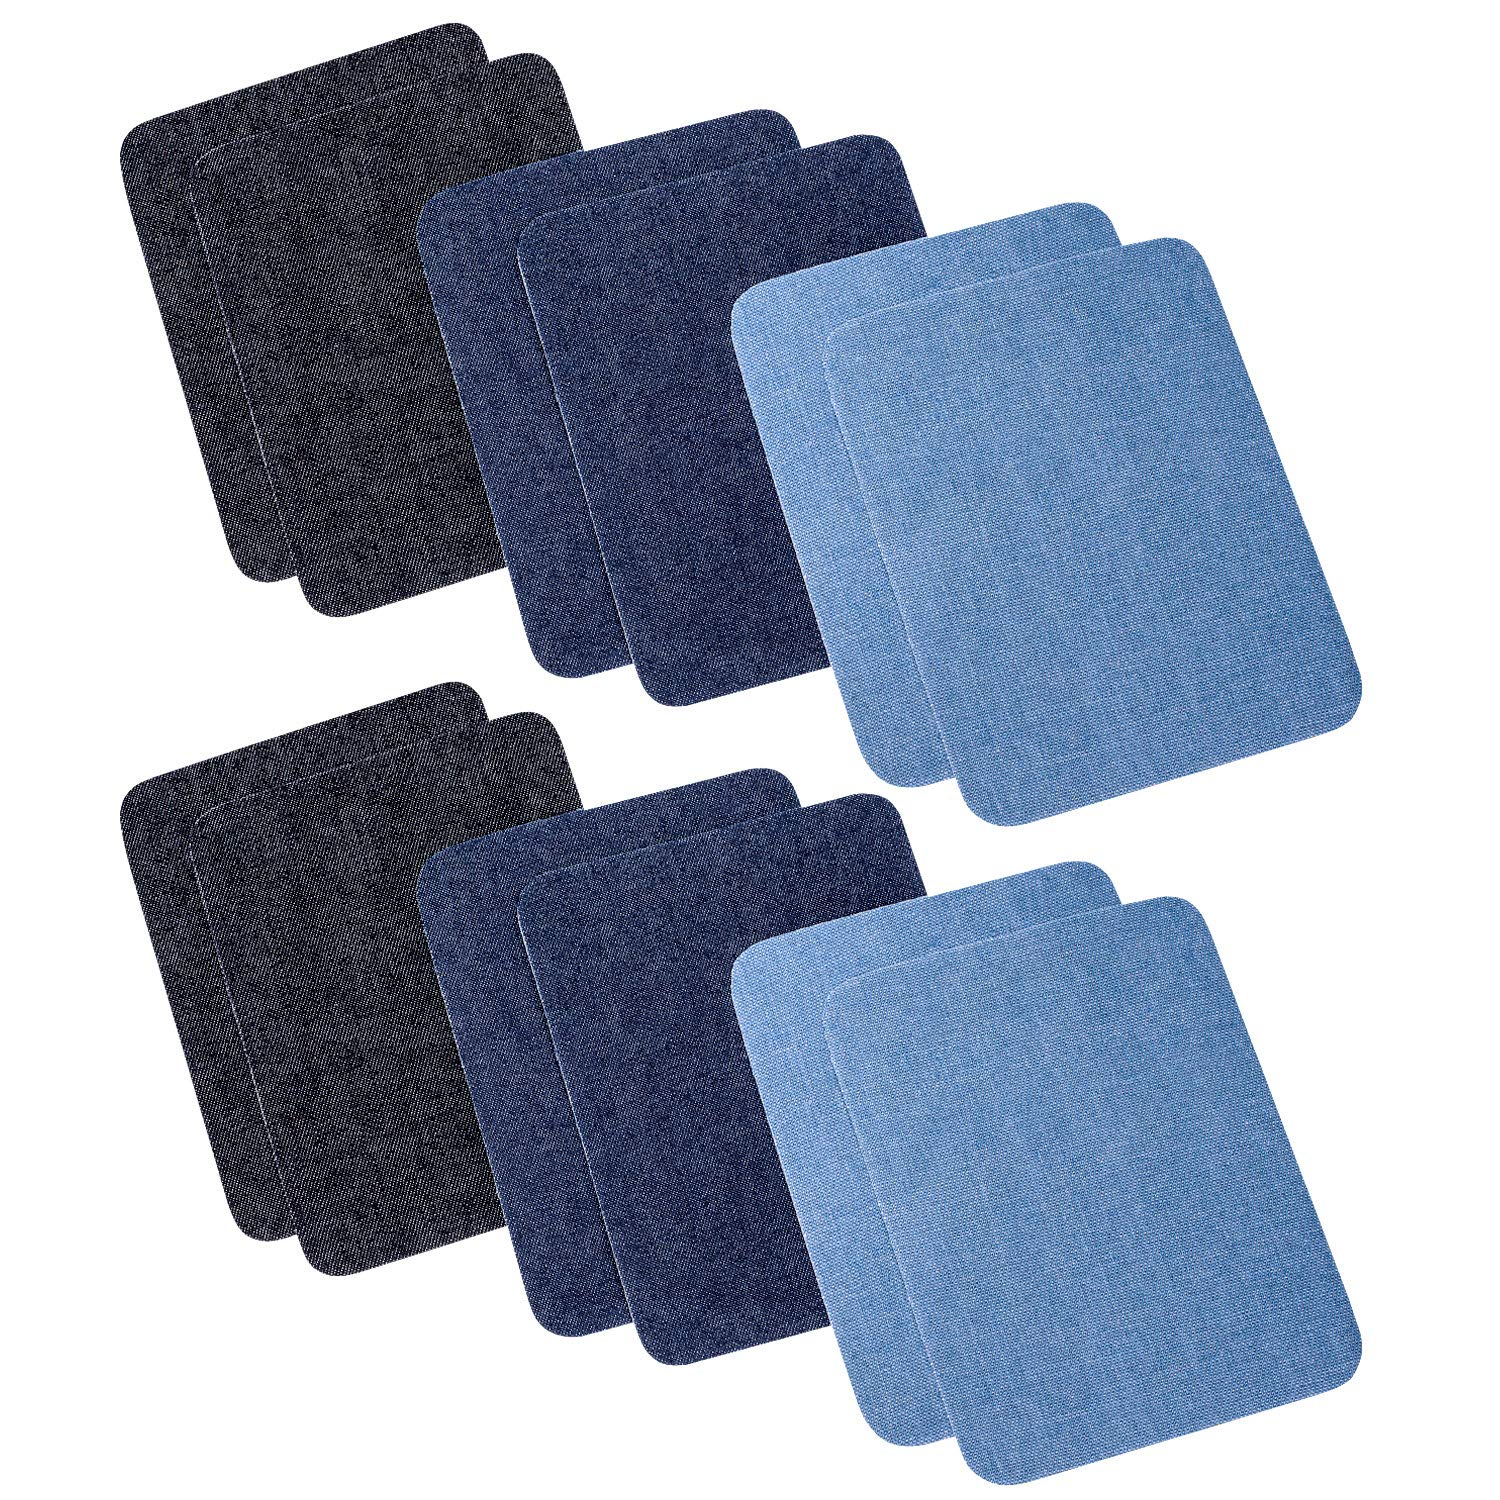 Iron On Denim Patches for Clothing Jeans 12 PCS, 3 Colors (4.9 X 3.7) Petutu Iron-on-Patches